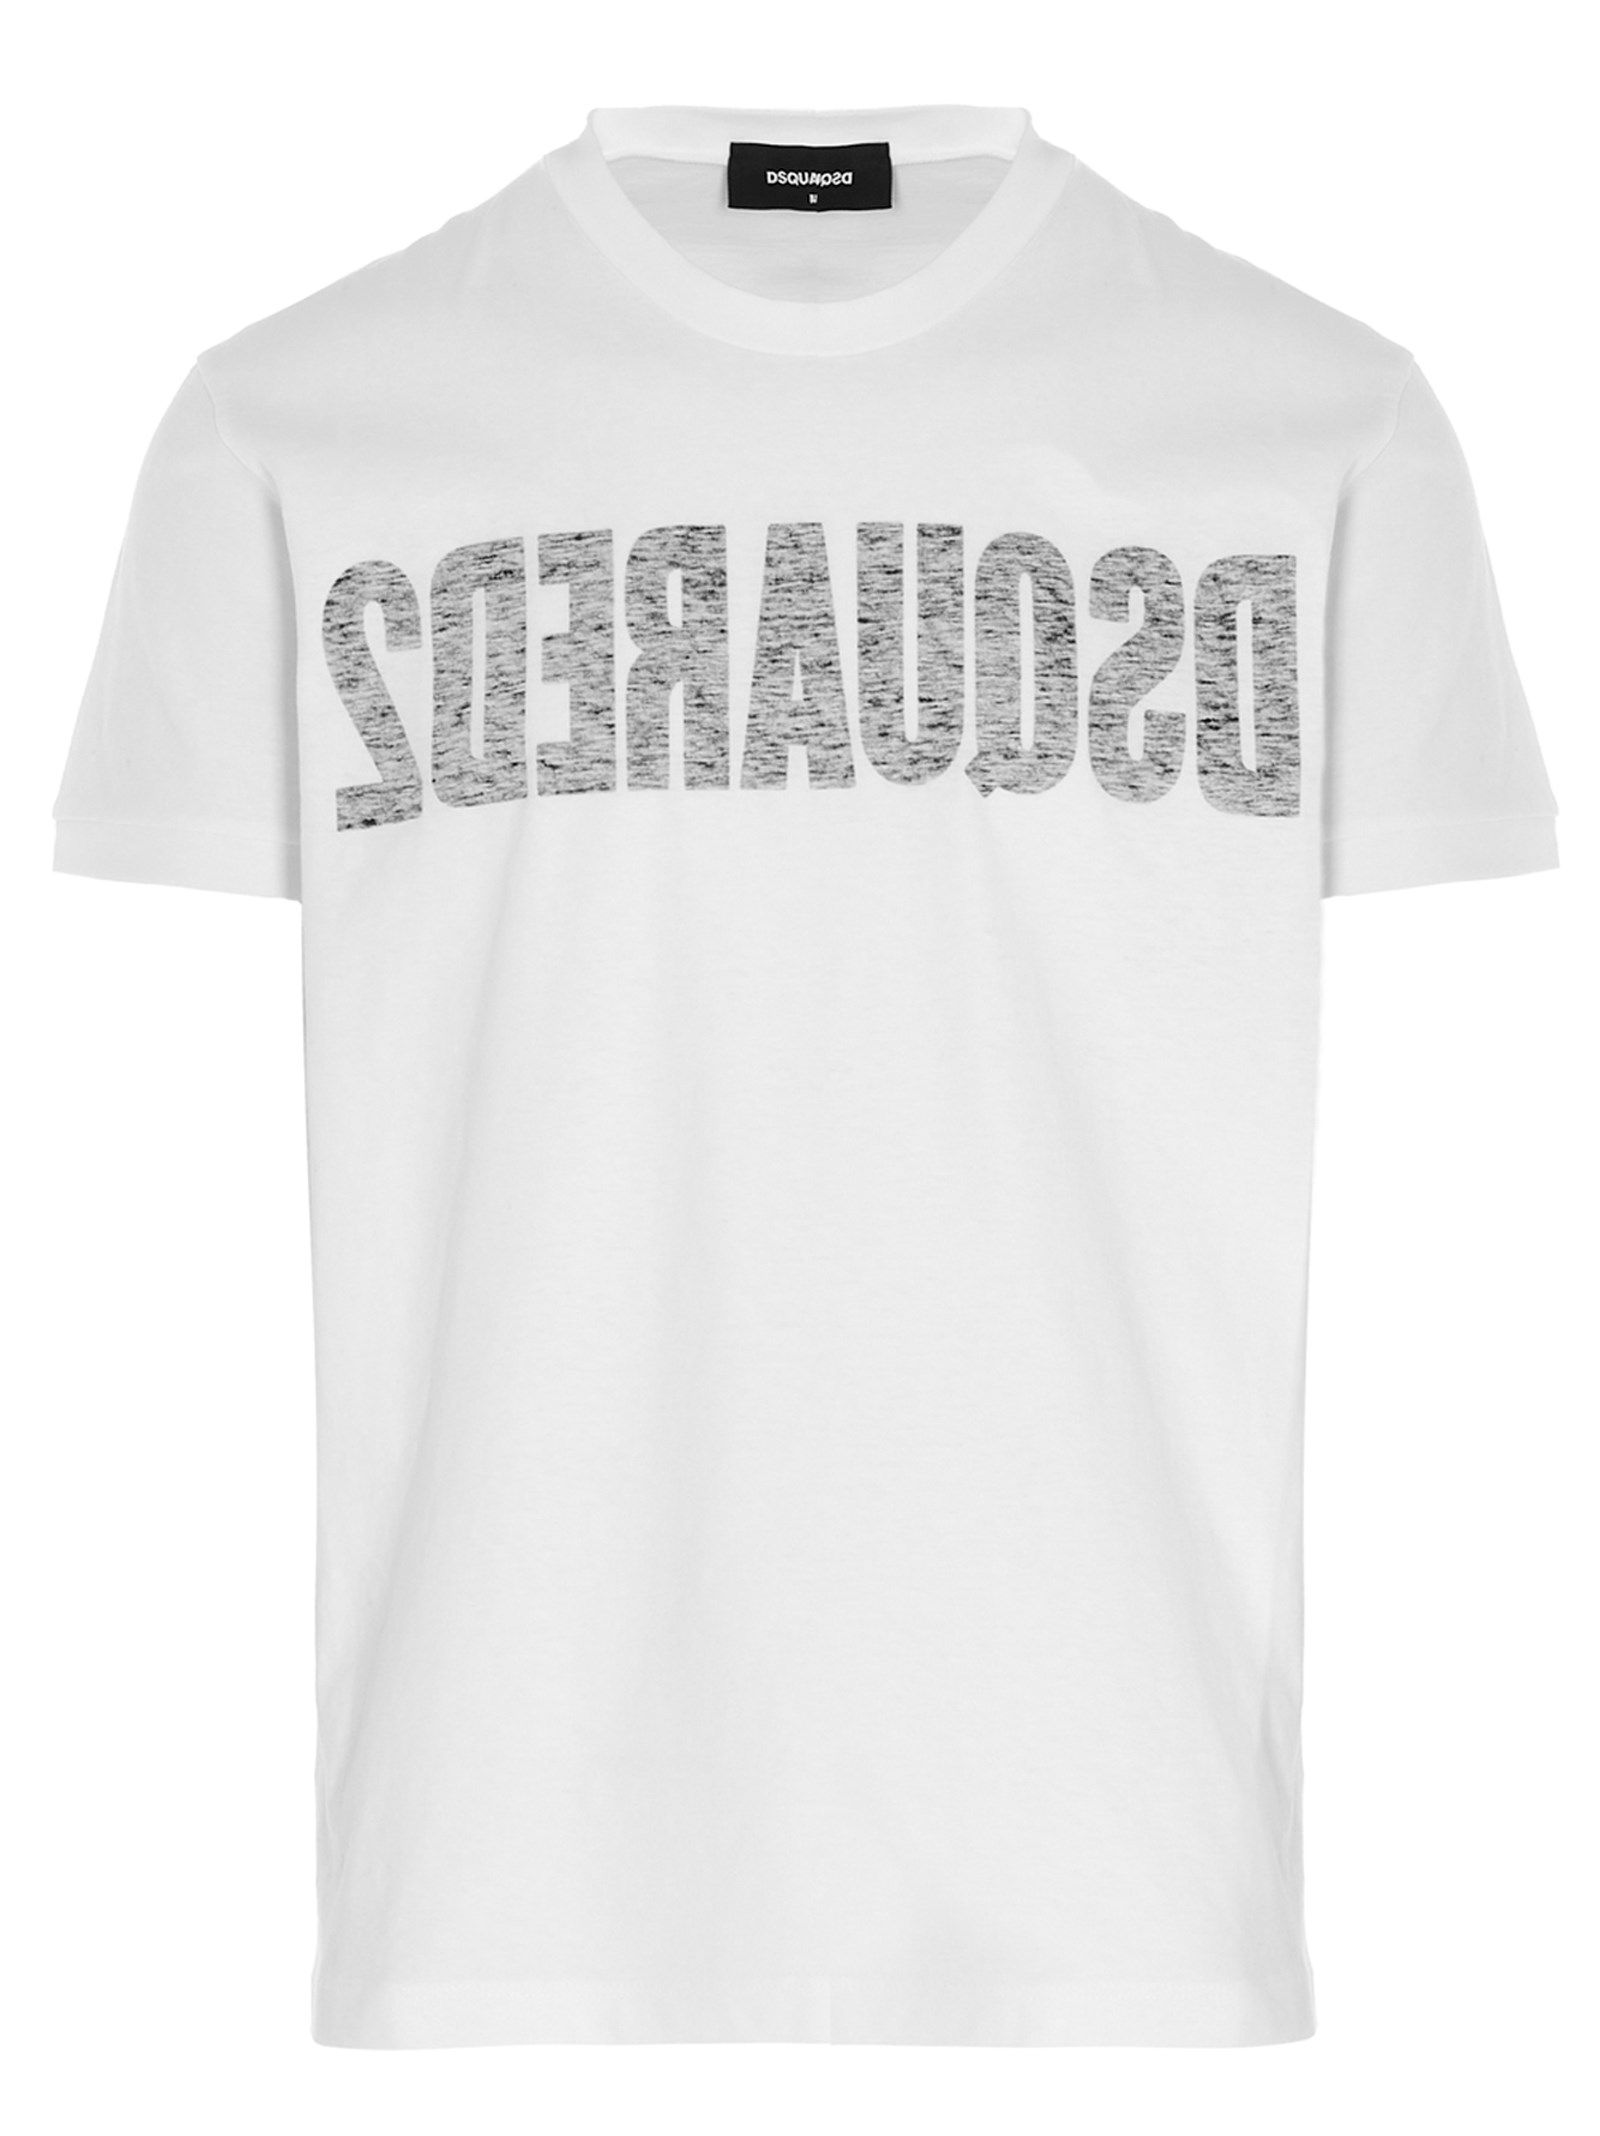 Dsquared2 Cottons DSQUARED2 MEN'S WHITE OTHER MATERIALS T-SHIRT